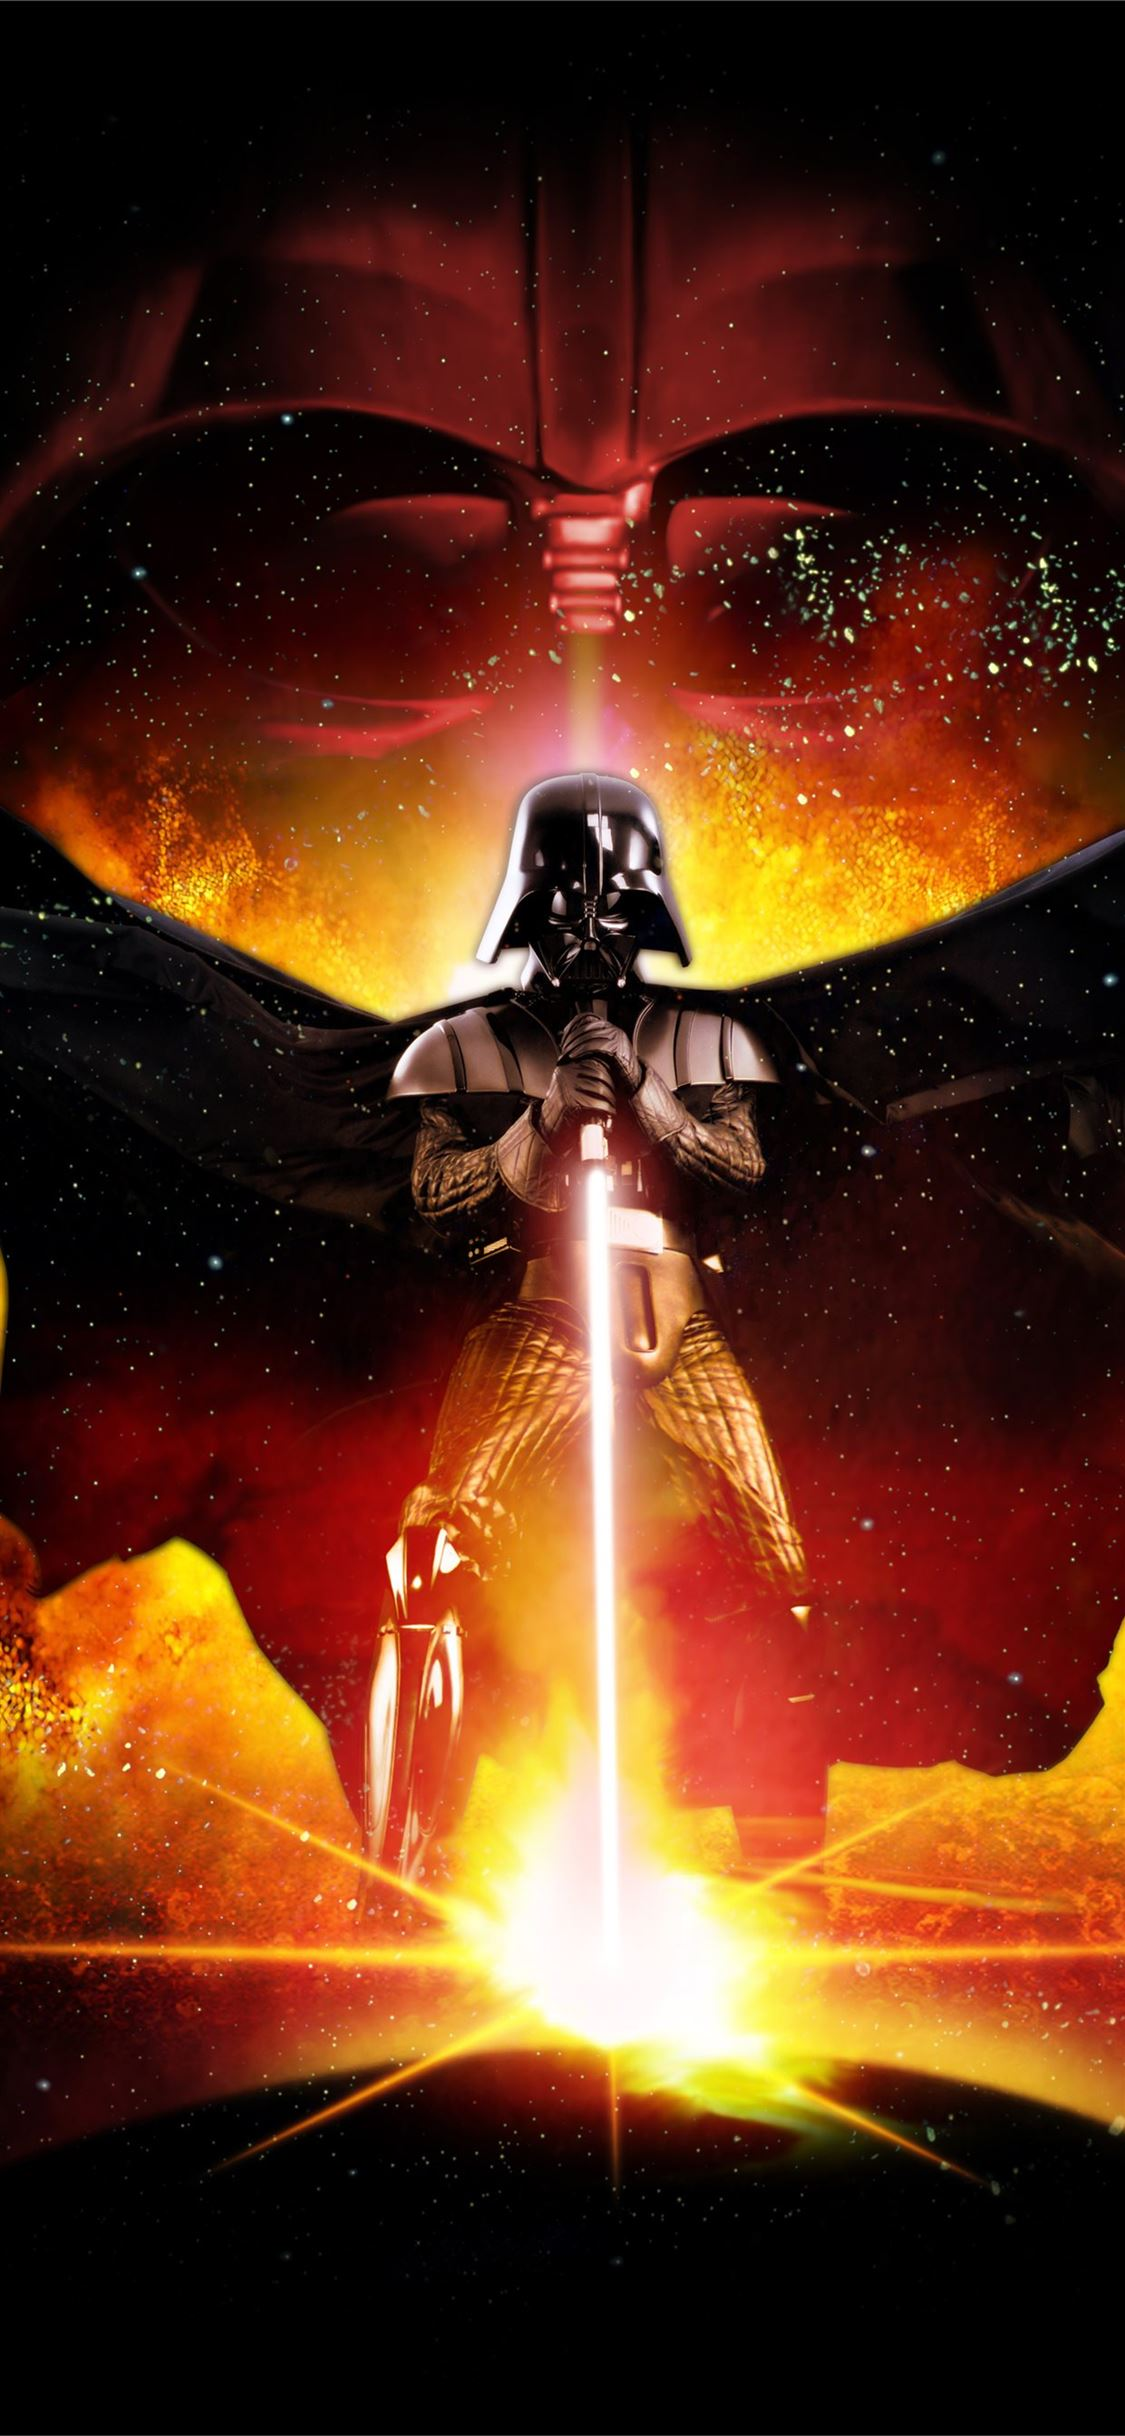 Darth Vader Star Wars Poster 4k Iphone X Wallpapers Free Download